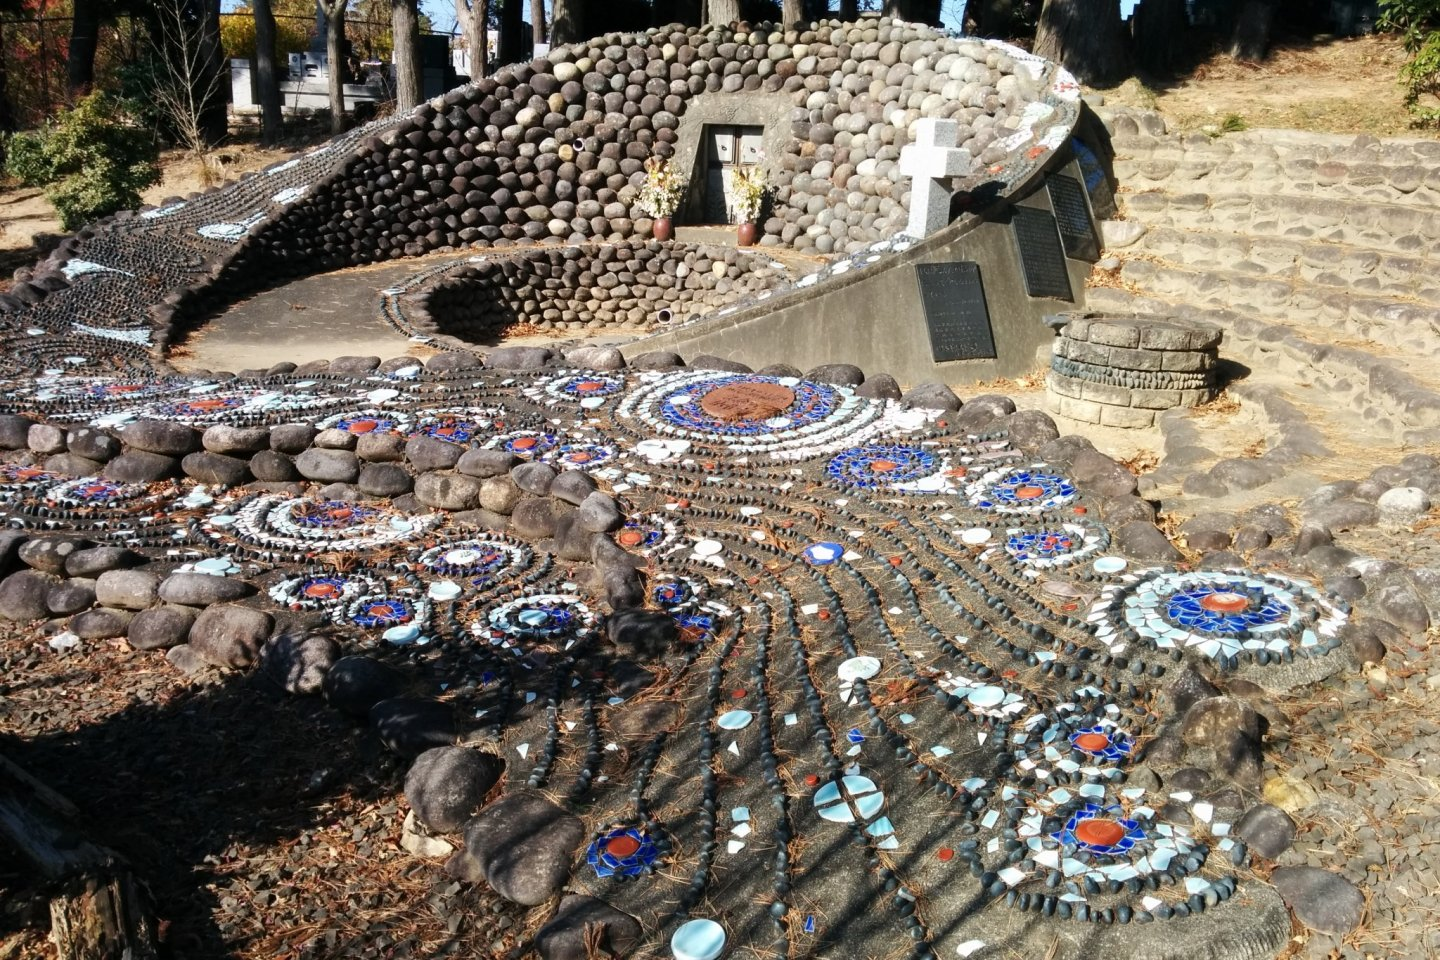 Masterful art at the Christian cemetery